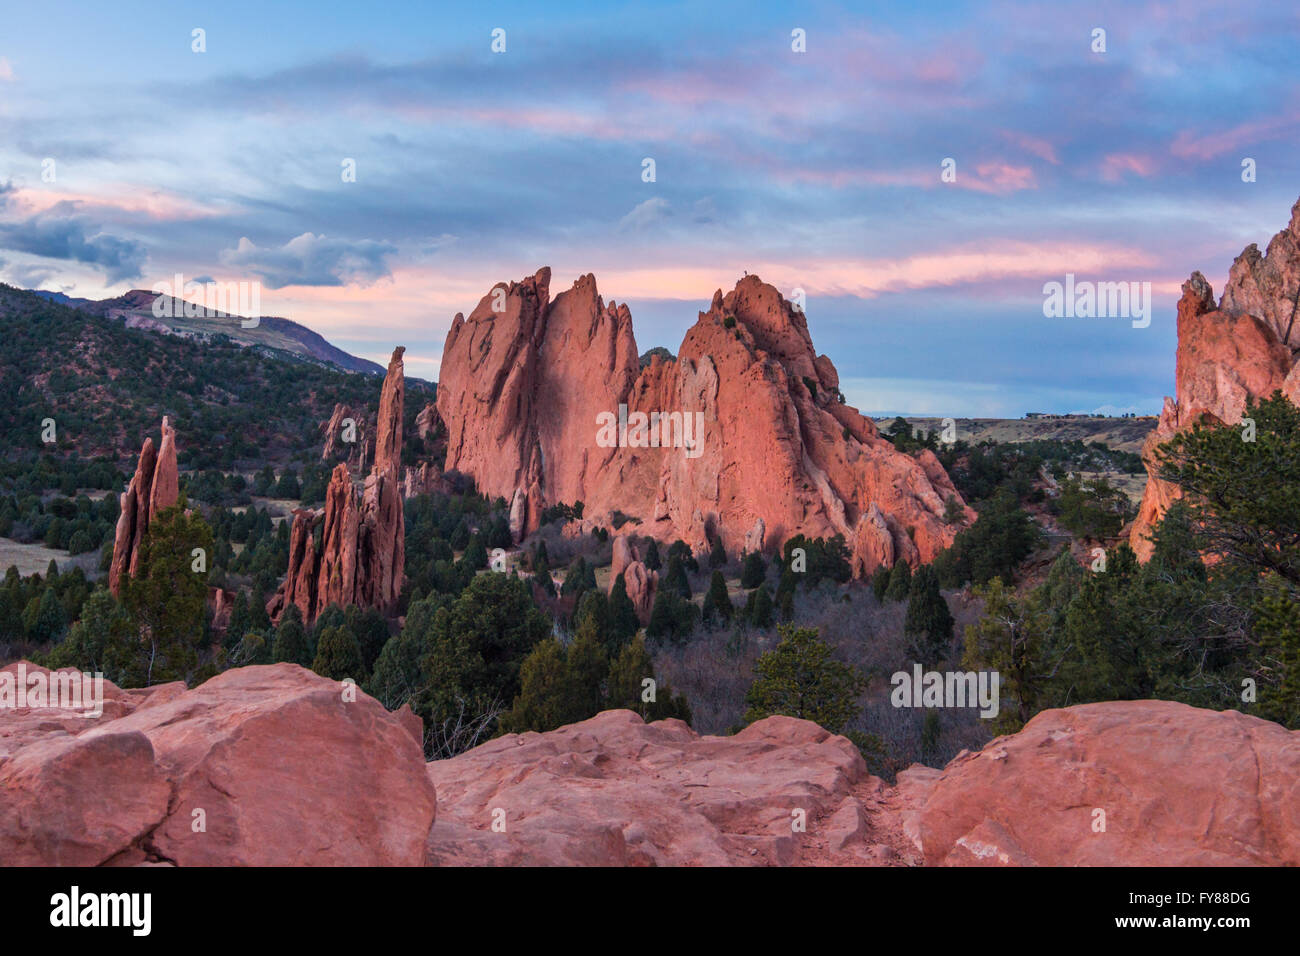 A pink and blue sunset stretches over towering red rock formations in Garden of the Gods park near Colorado Springs, - Stock Image